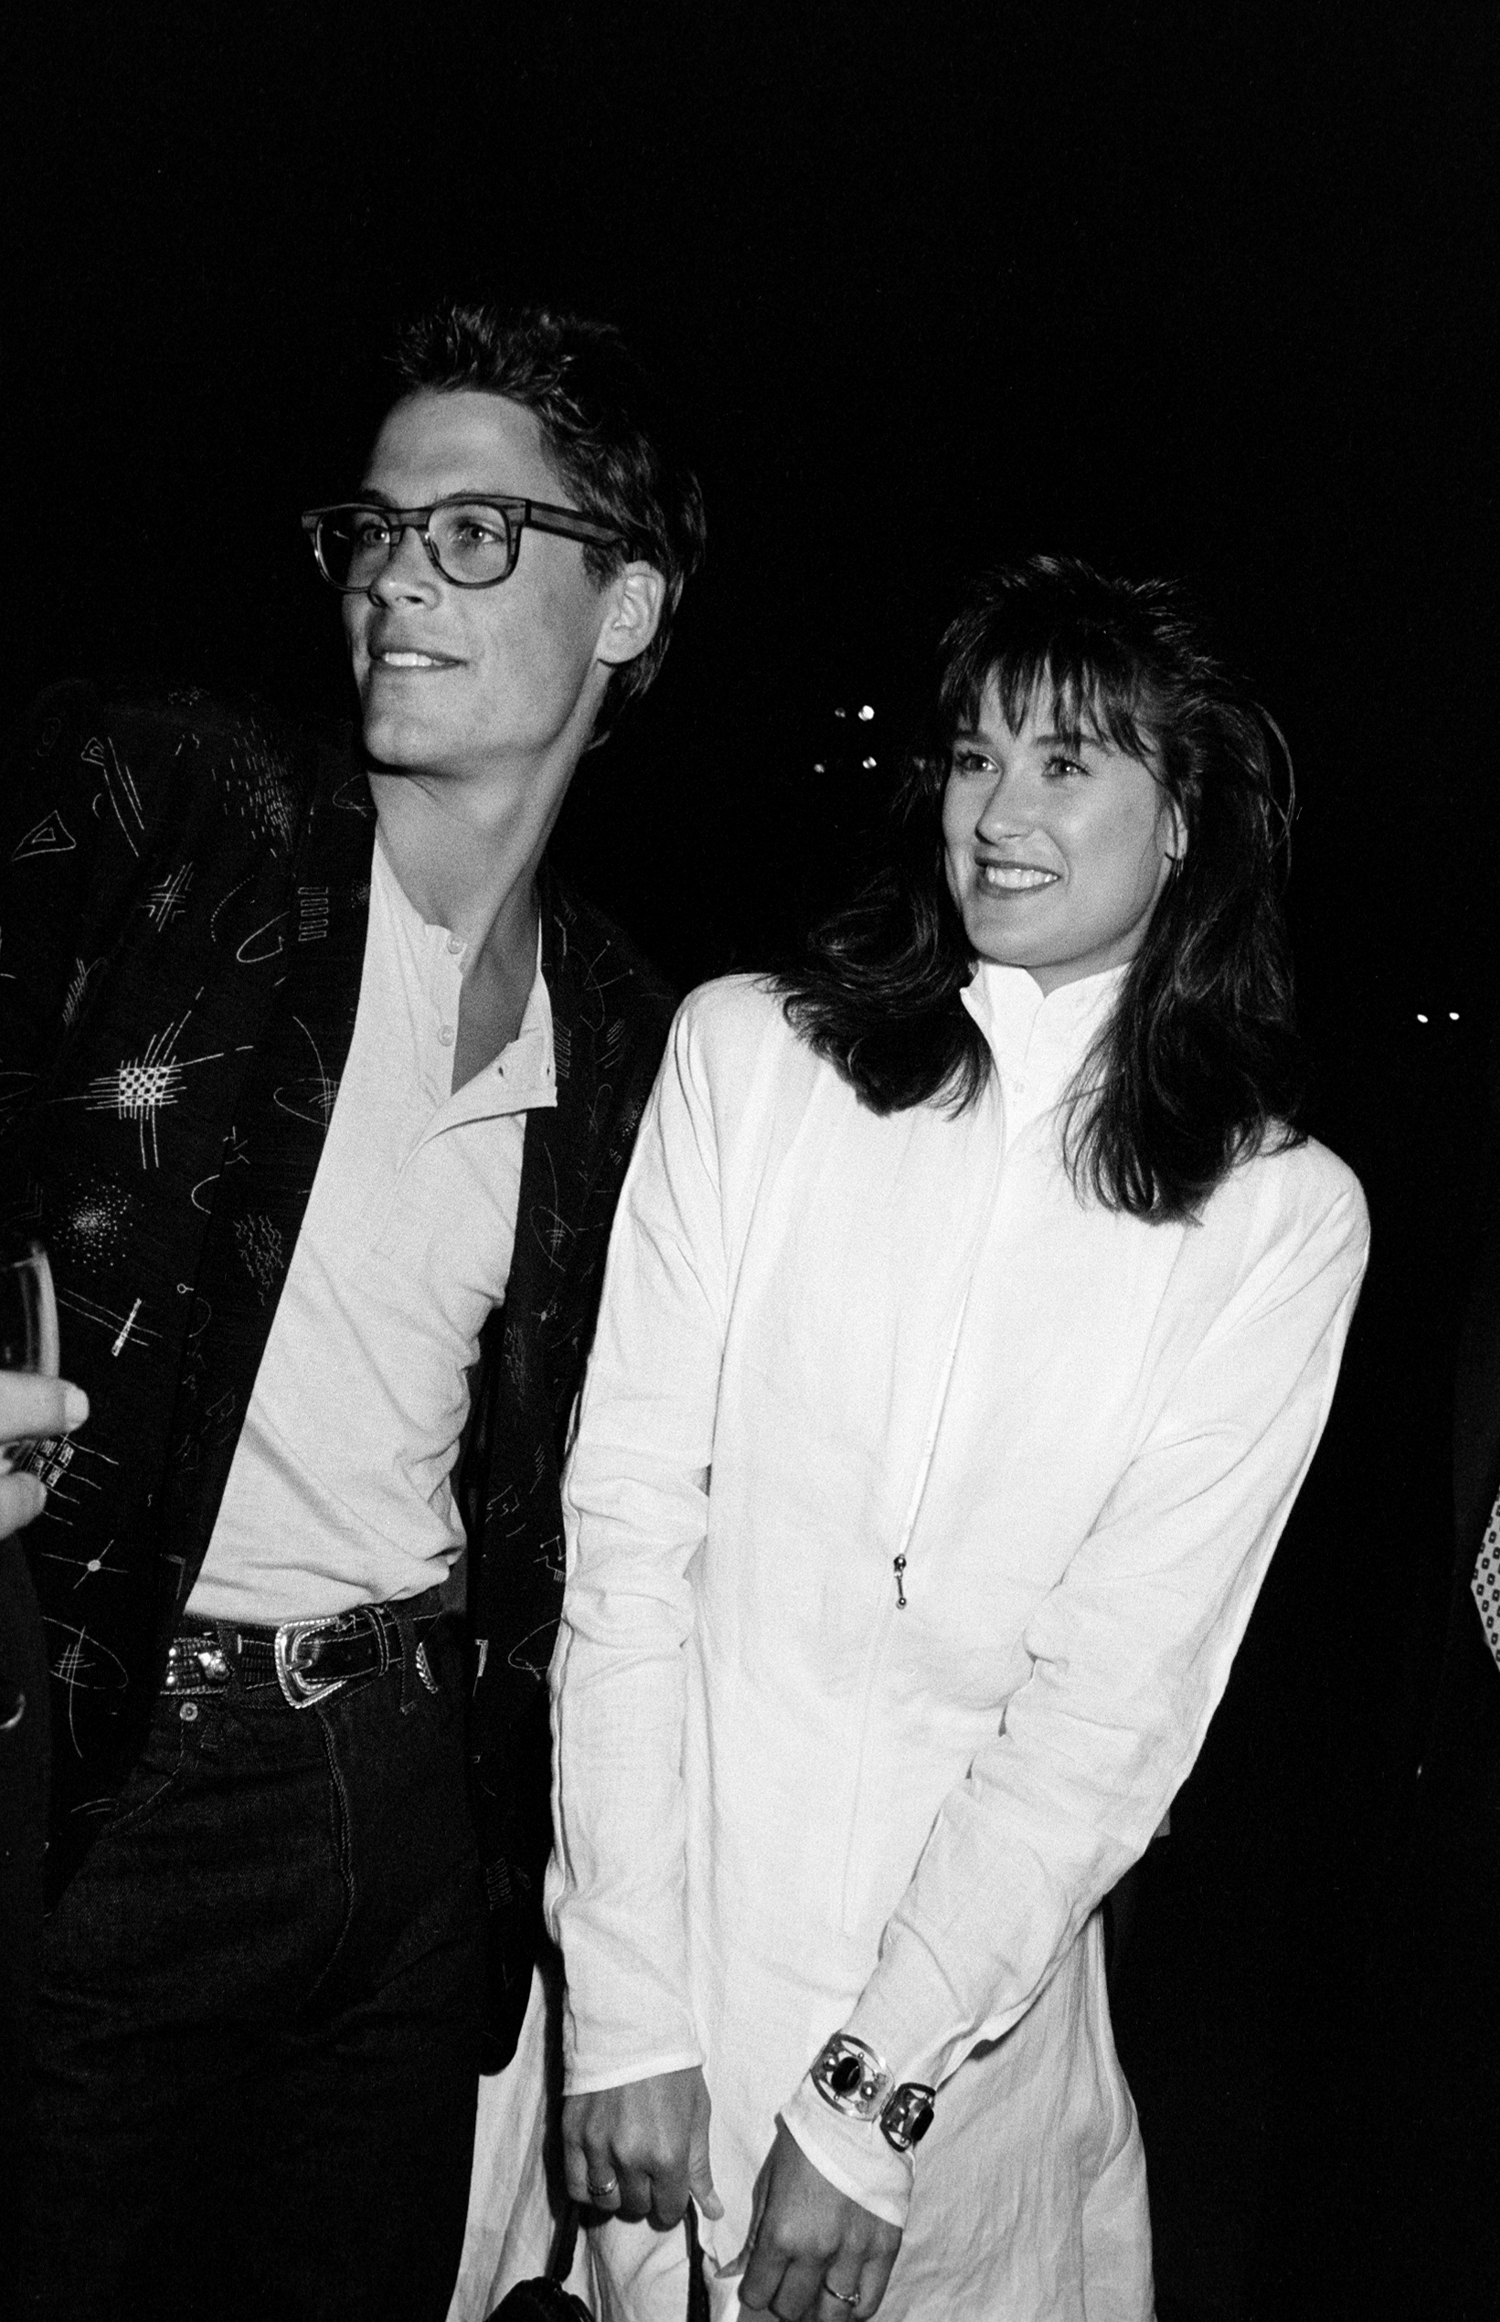 Rob Lowe and Demi Moore pose together in 1986.